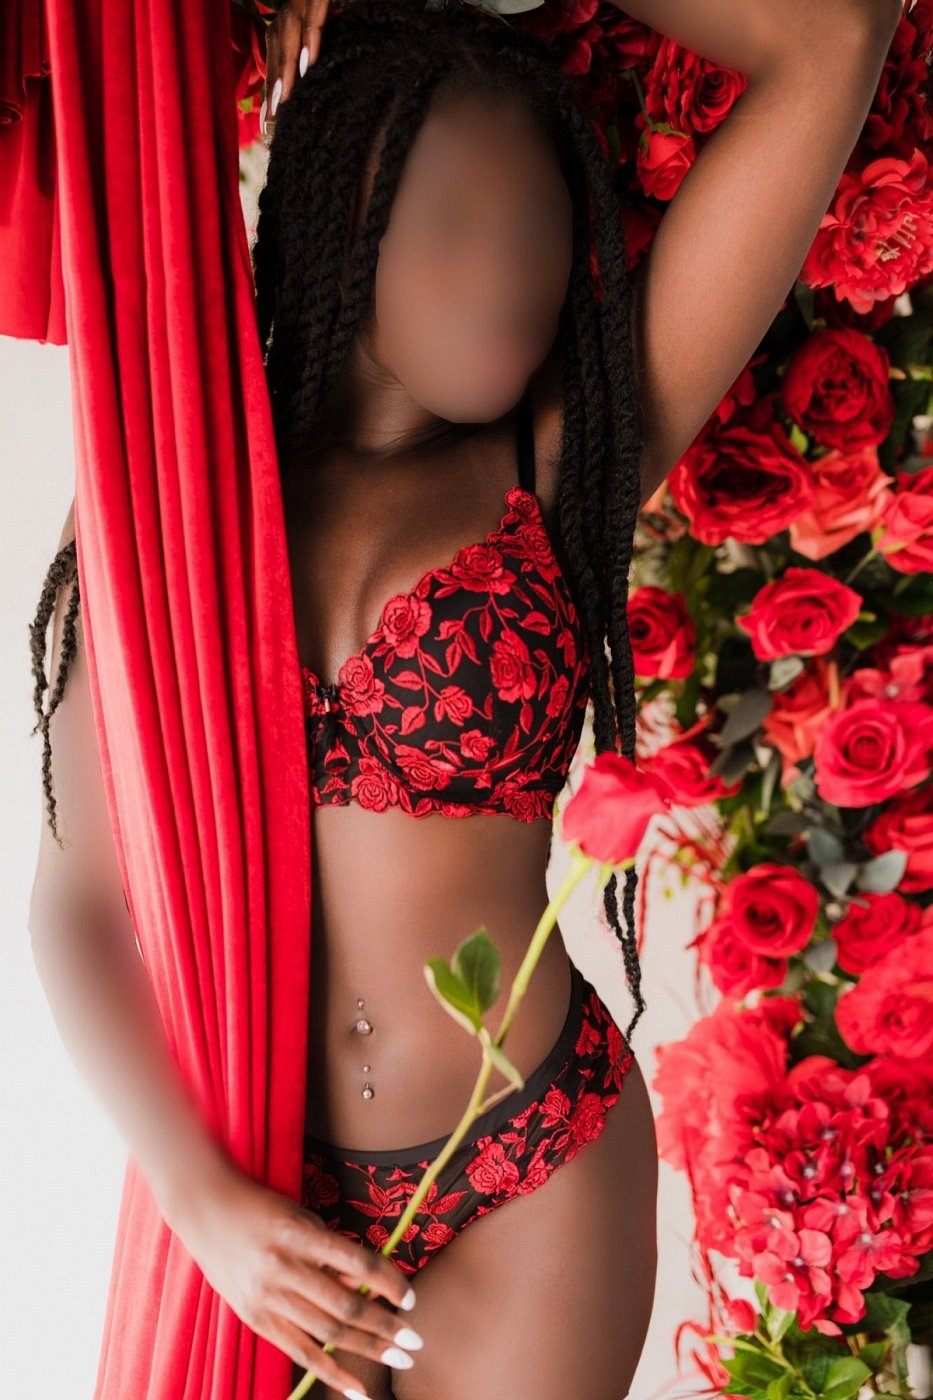 live escort in Irmo, erotic massage